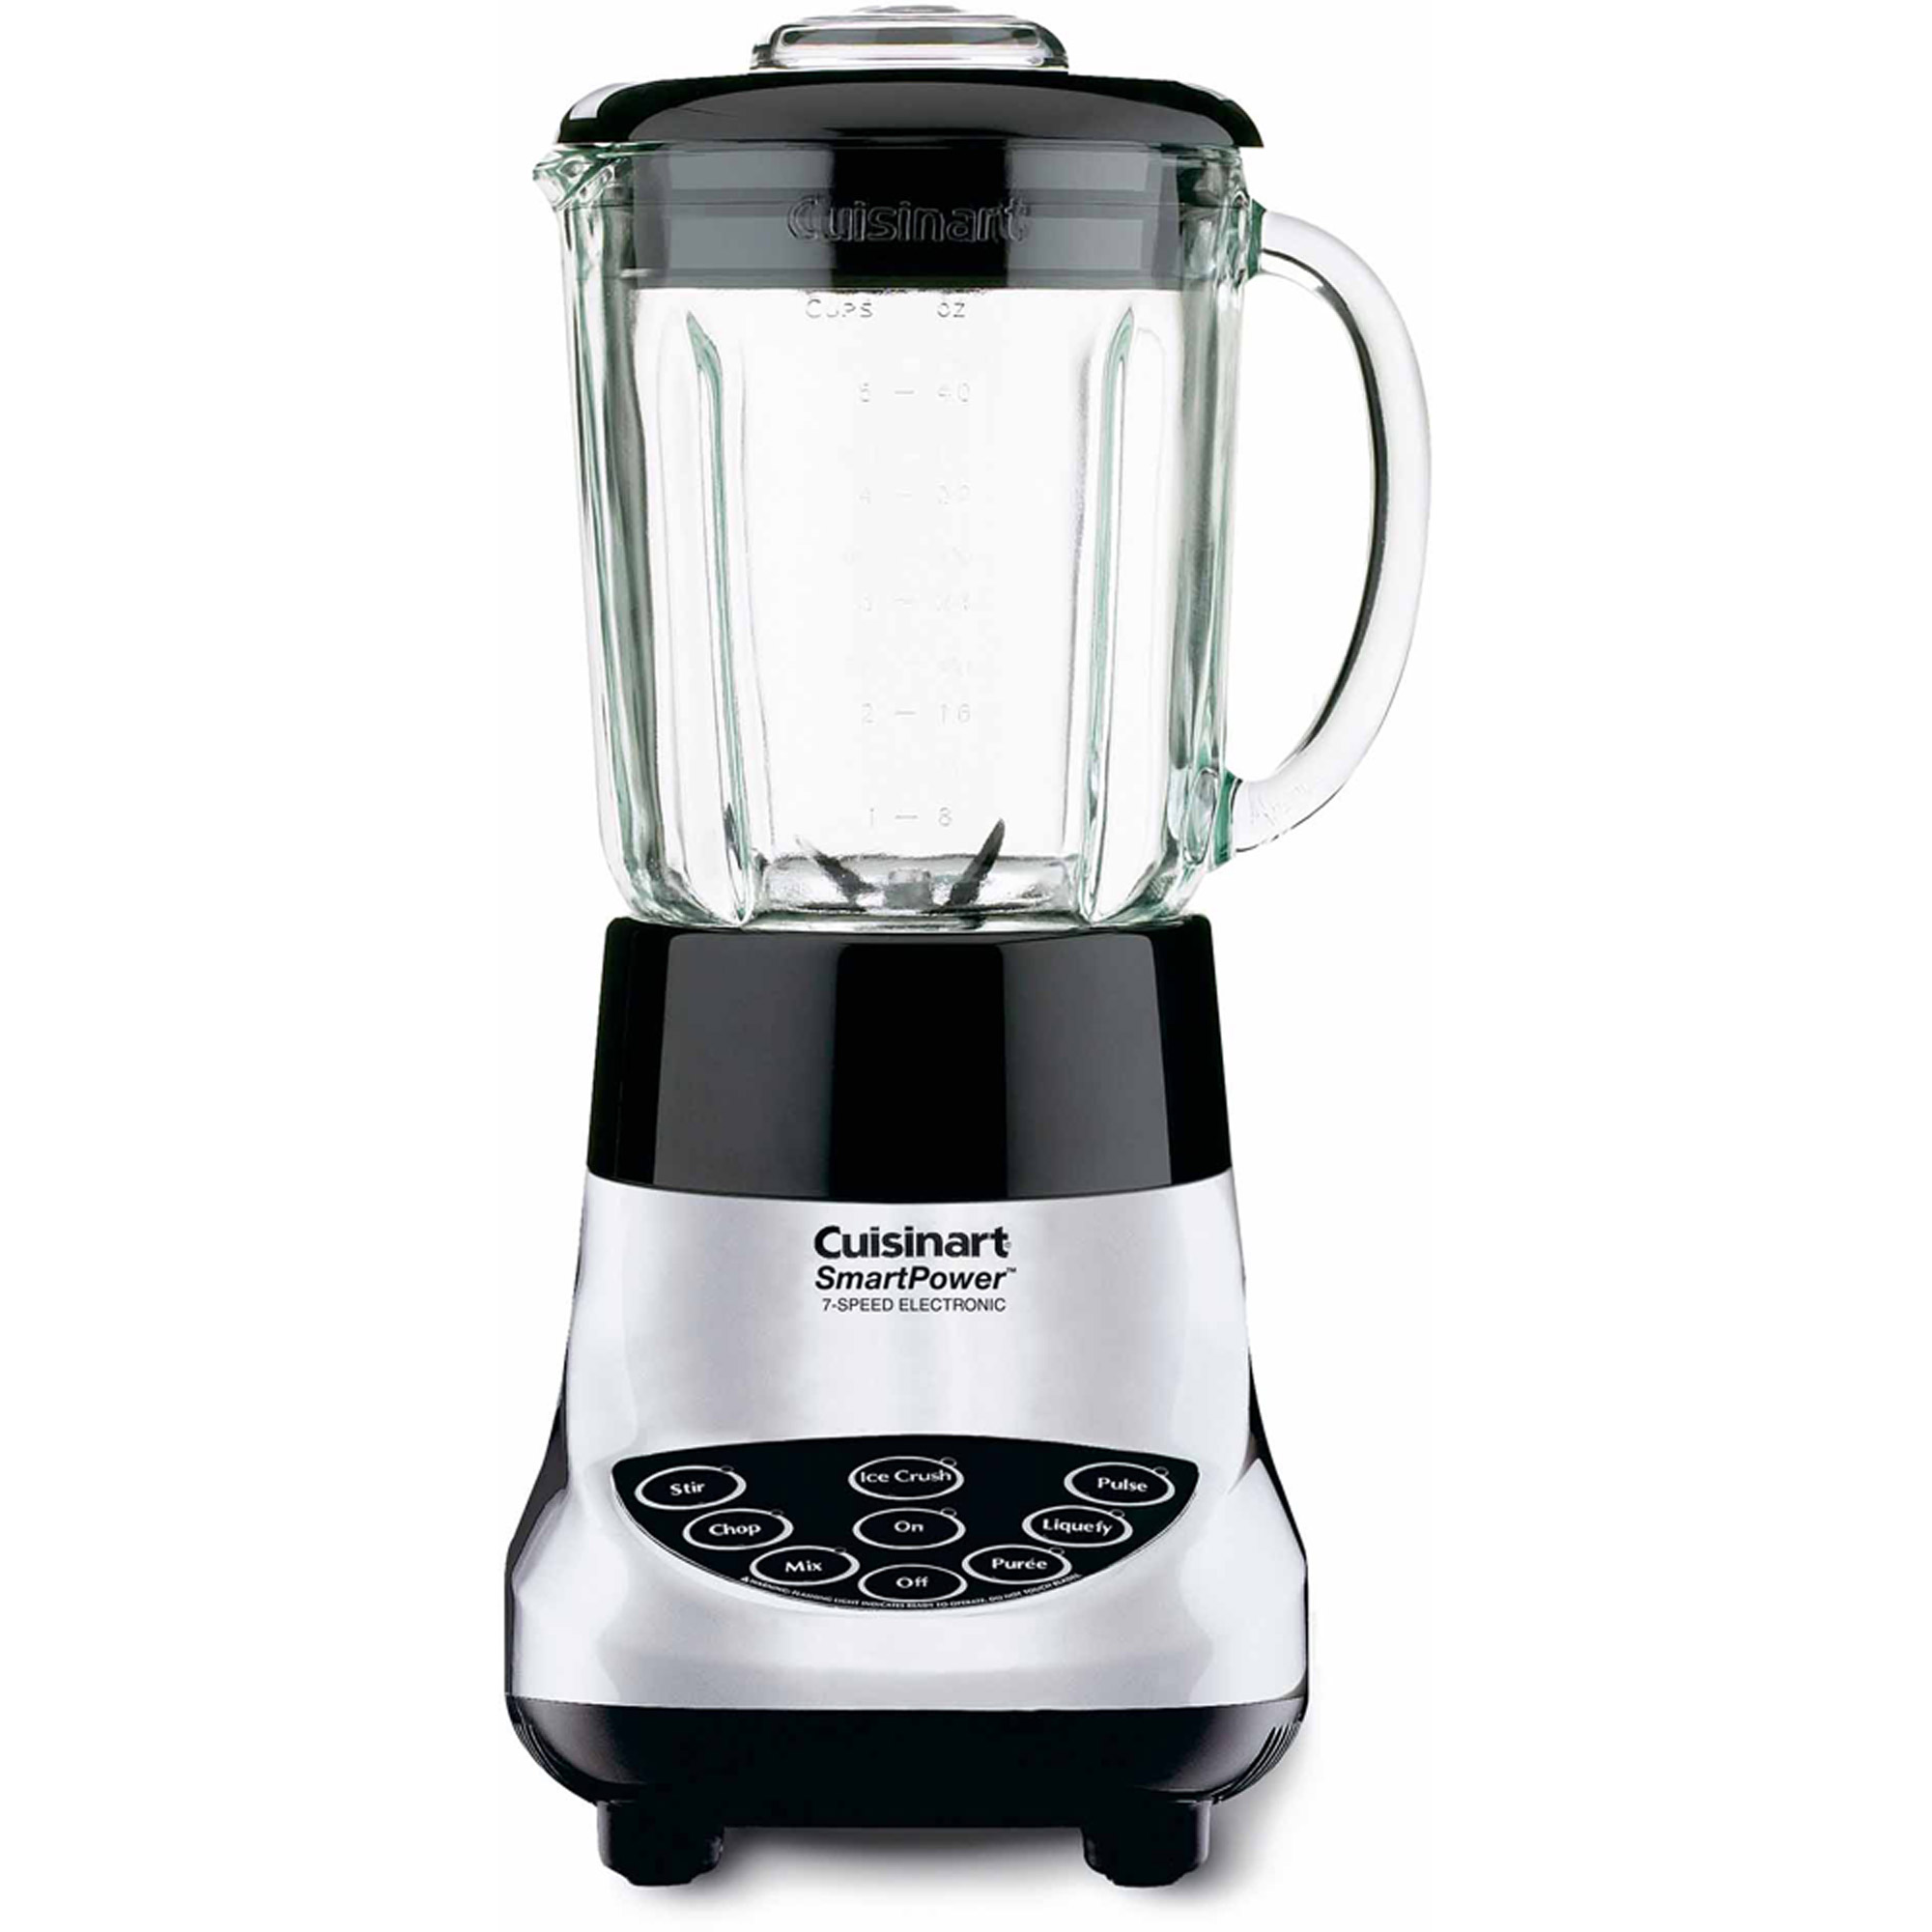 Cuisinart SmartPower 7-Speed Electronic Blender, Chrome SPB-7CH